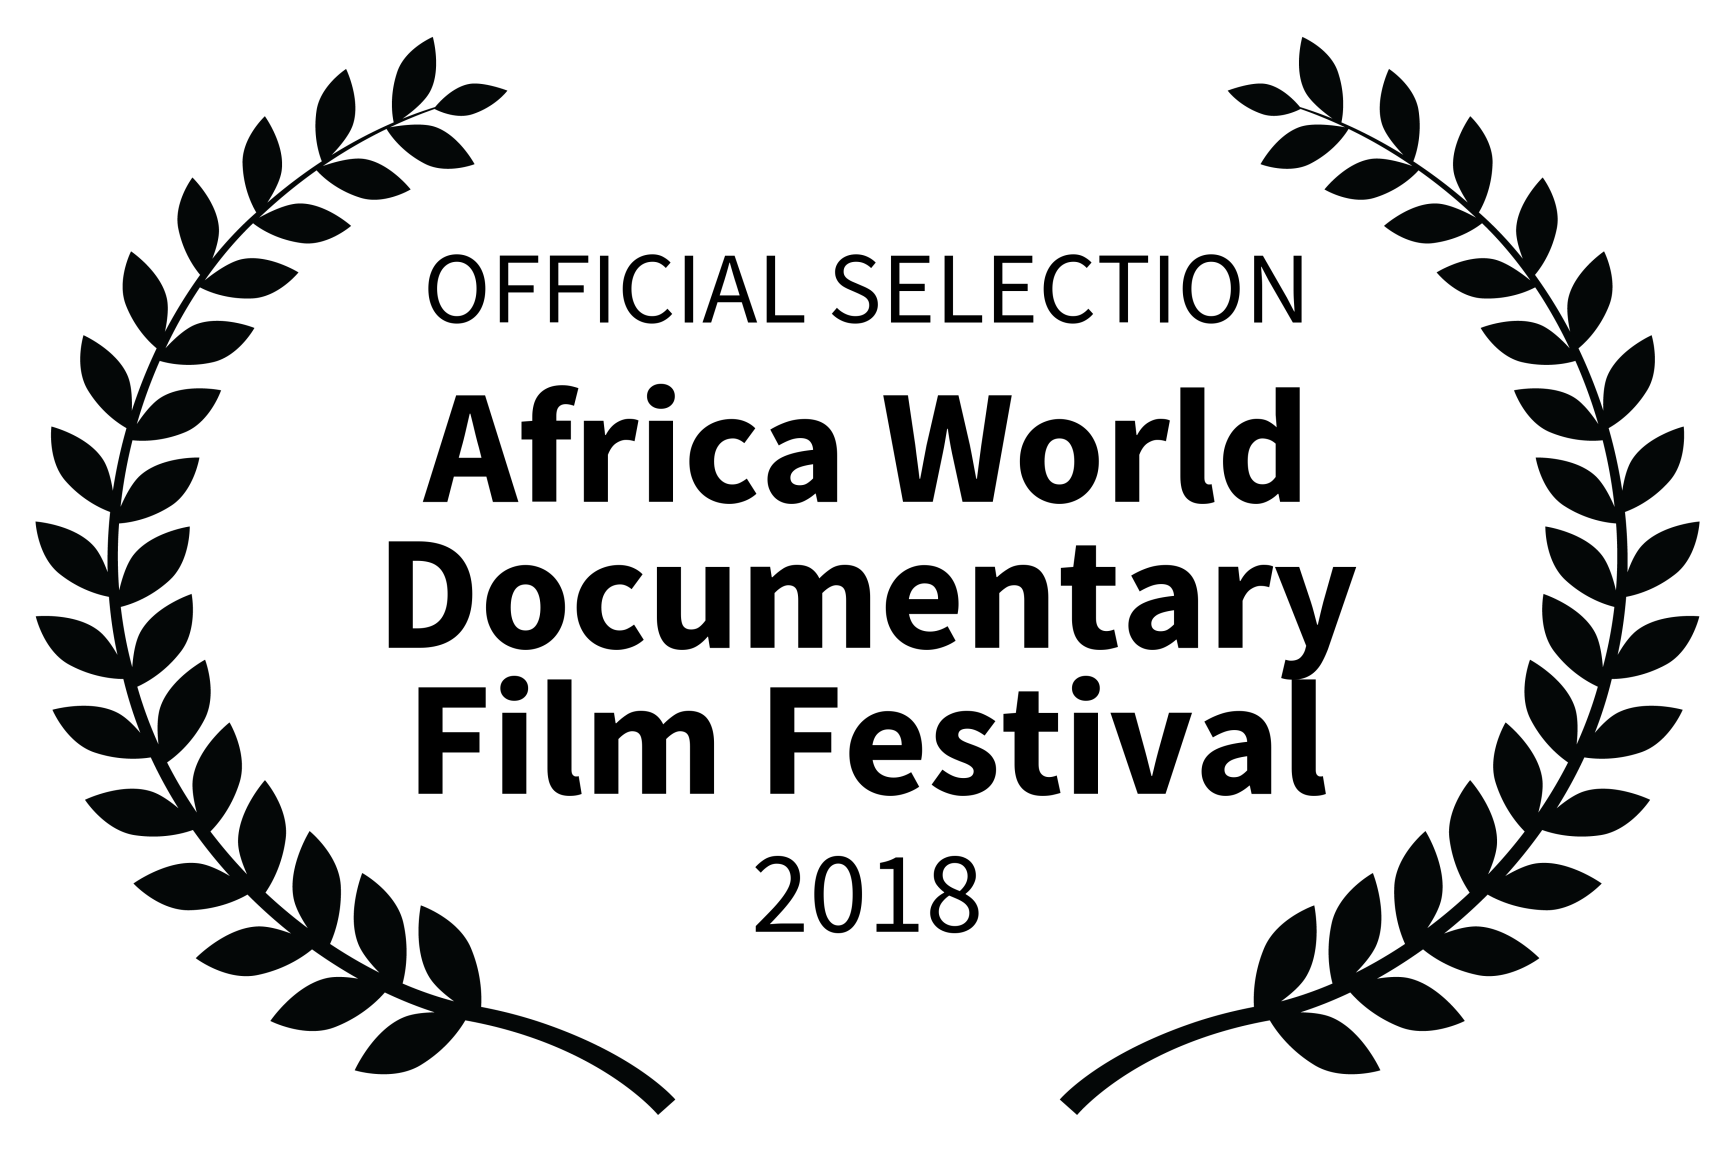 OFFICIAL SELECTION - Africa World Docume